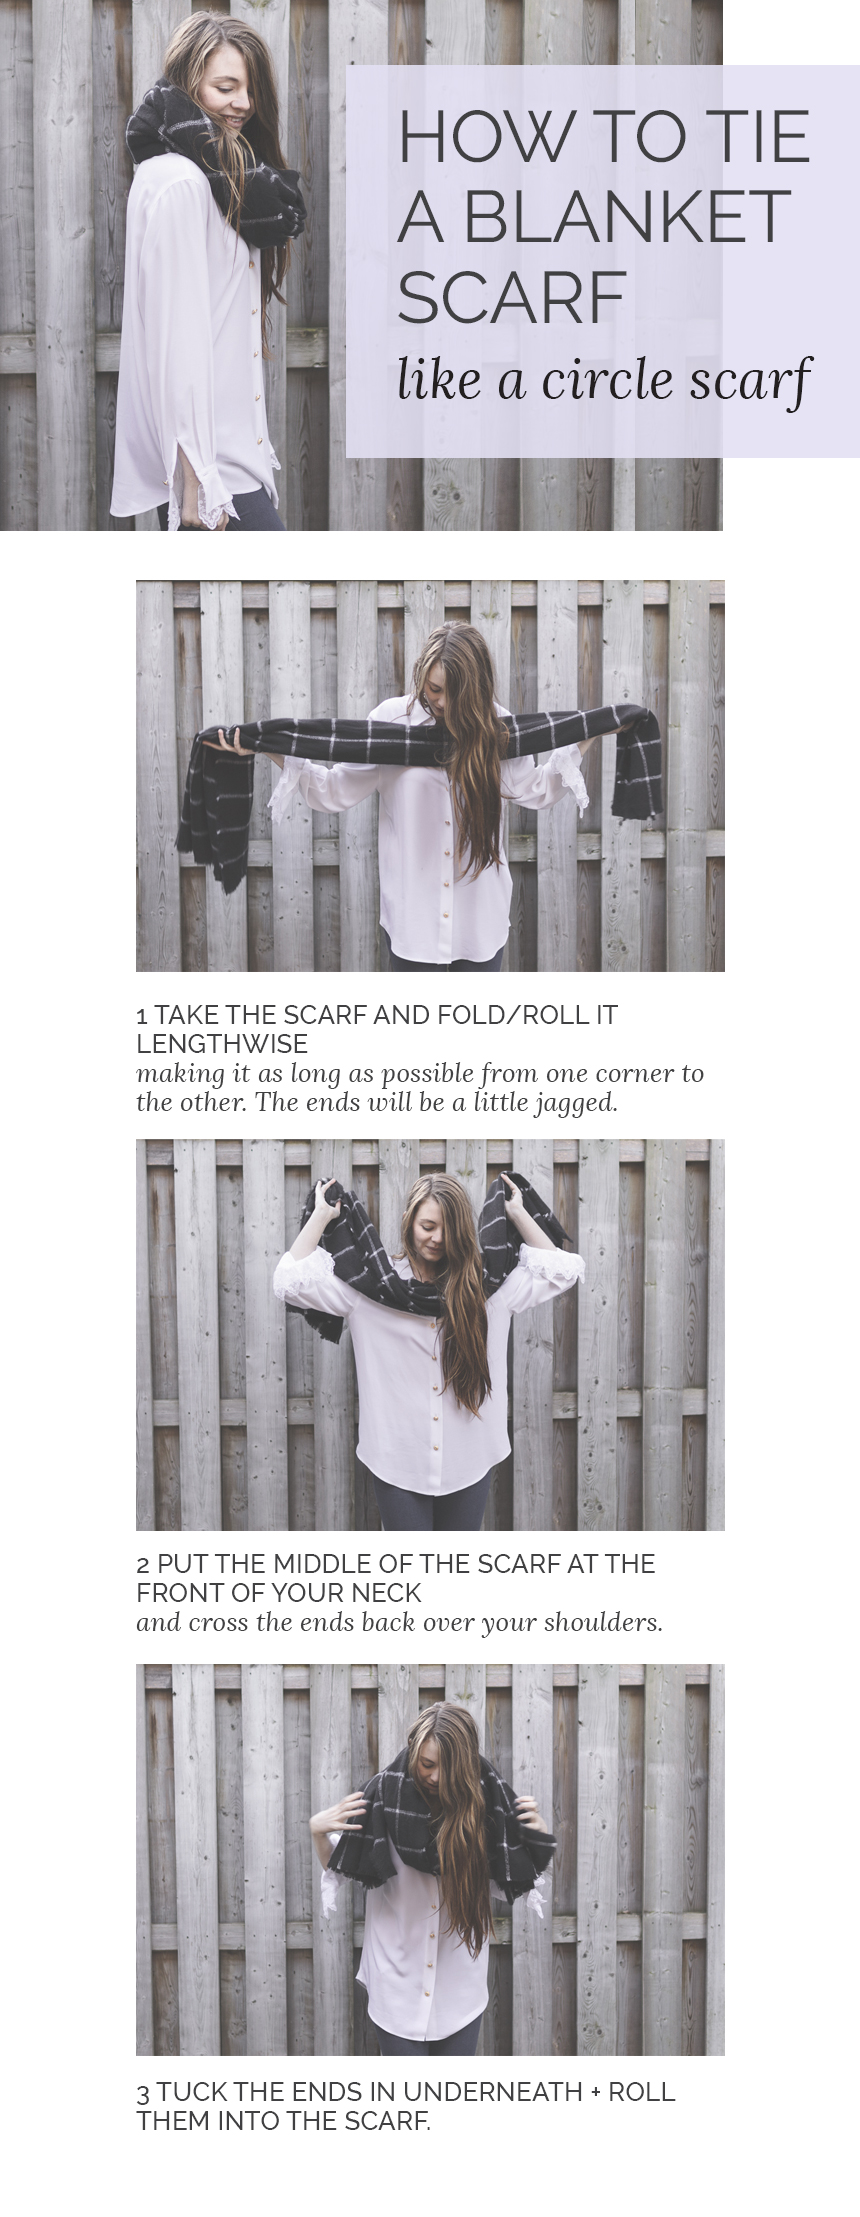 how-to-wear-a-blanket-scarf-via-rebecca-jacobs.com2.jpg